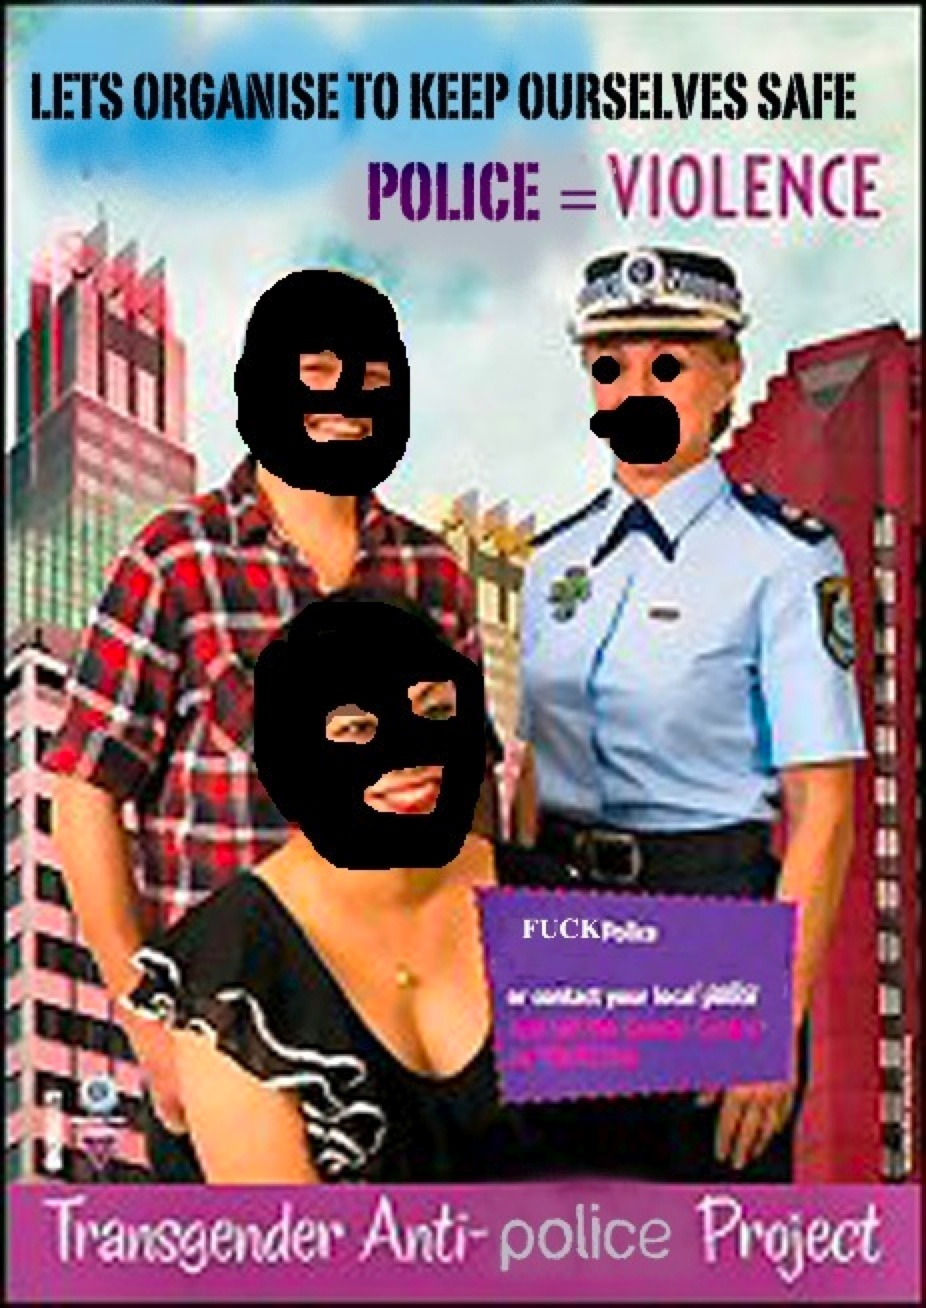 Trans anti-police project – DISACCORDS